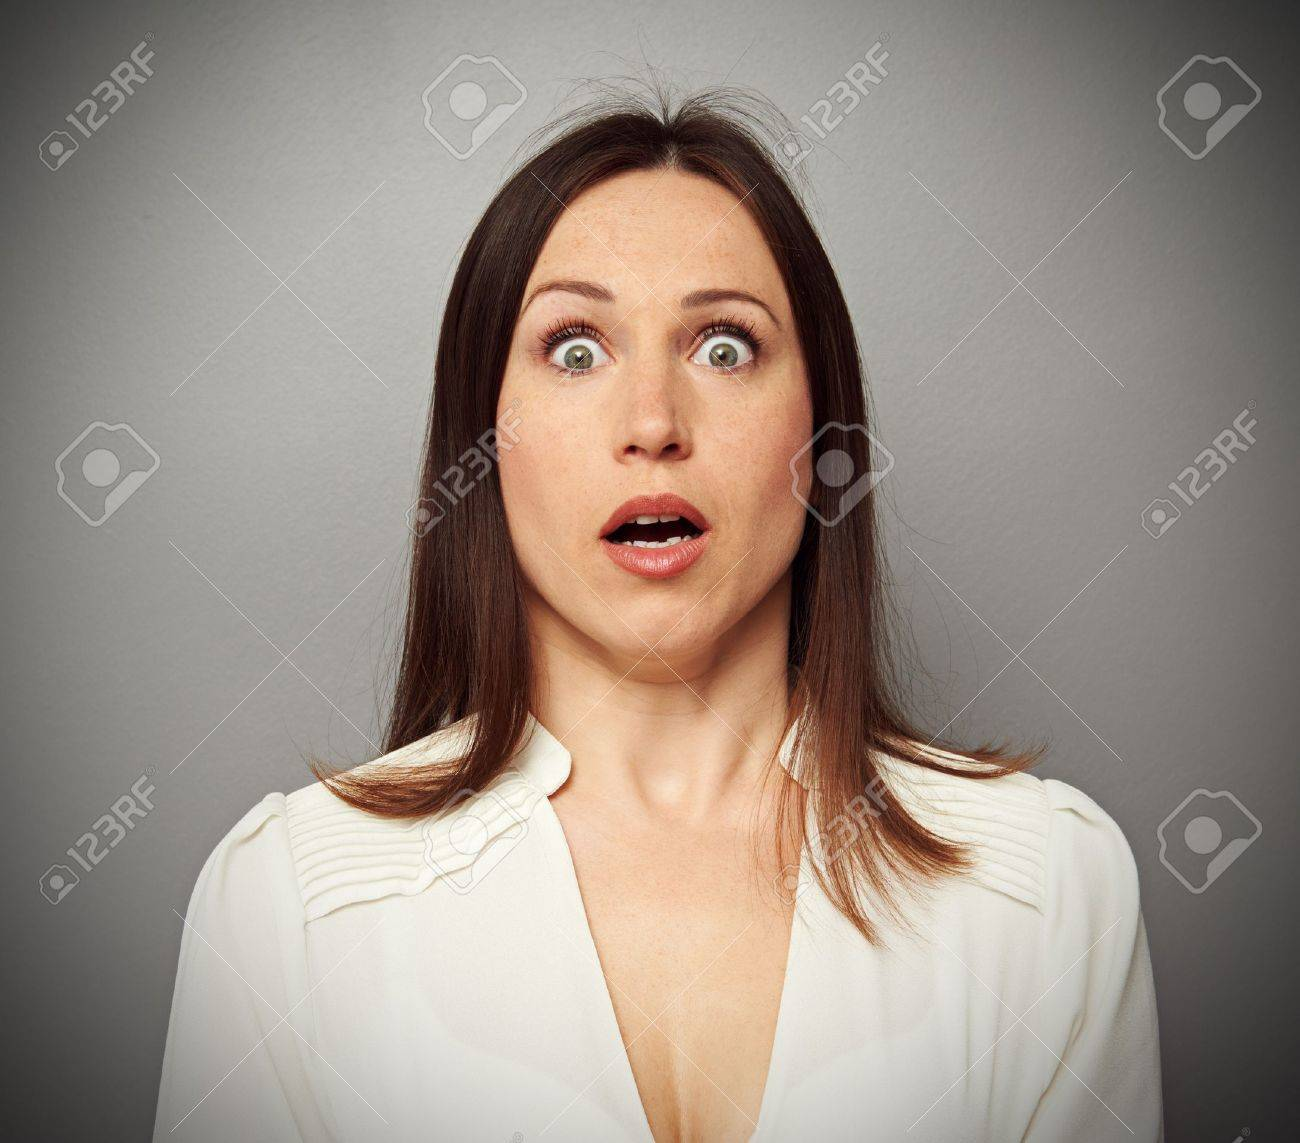 frightened woman looking at camera over dark background - 19563364